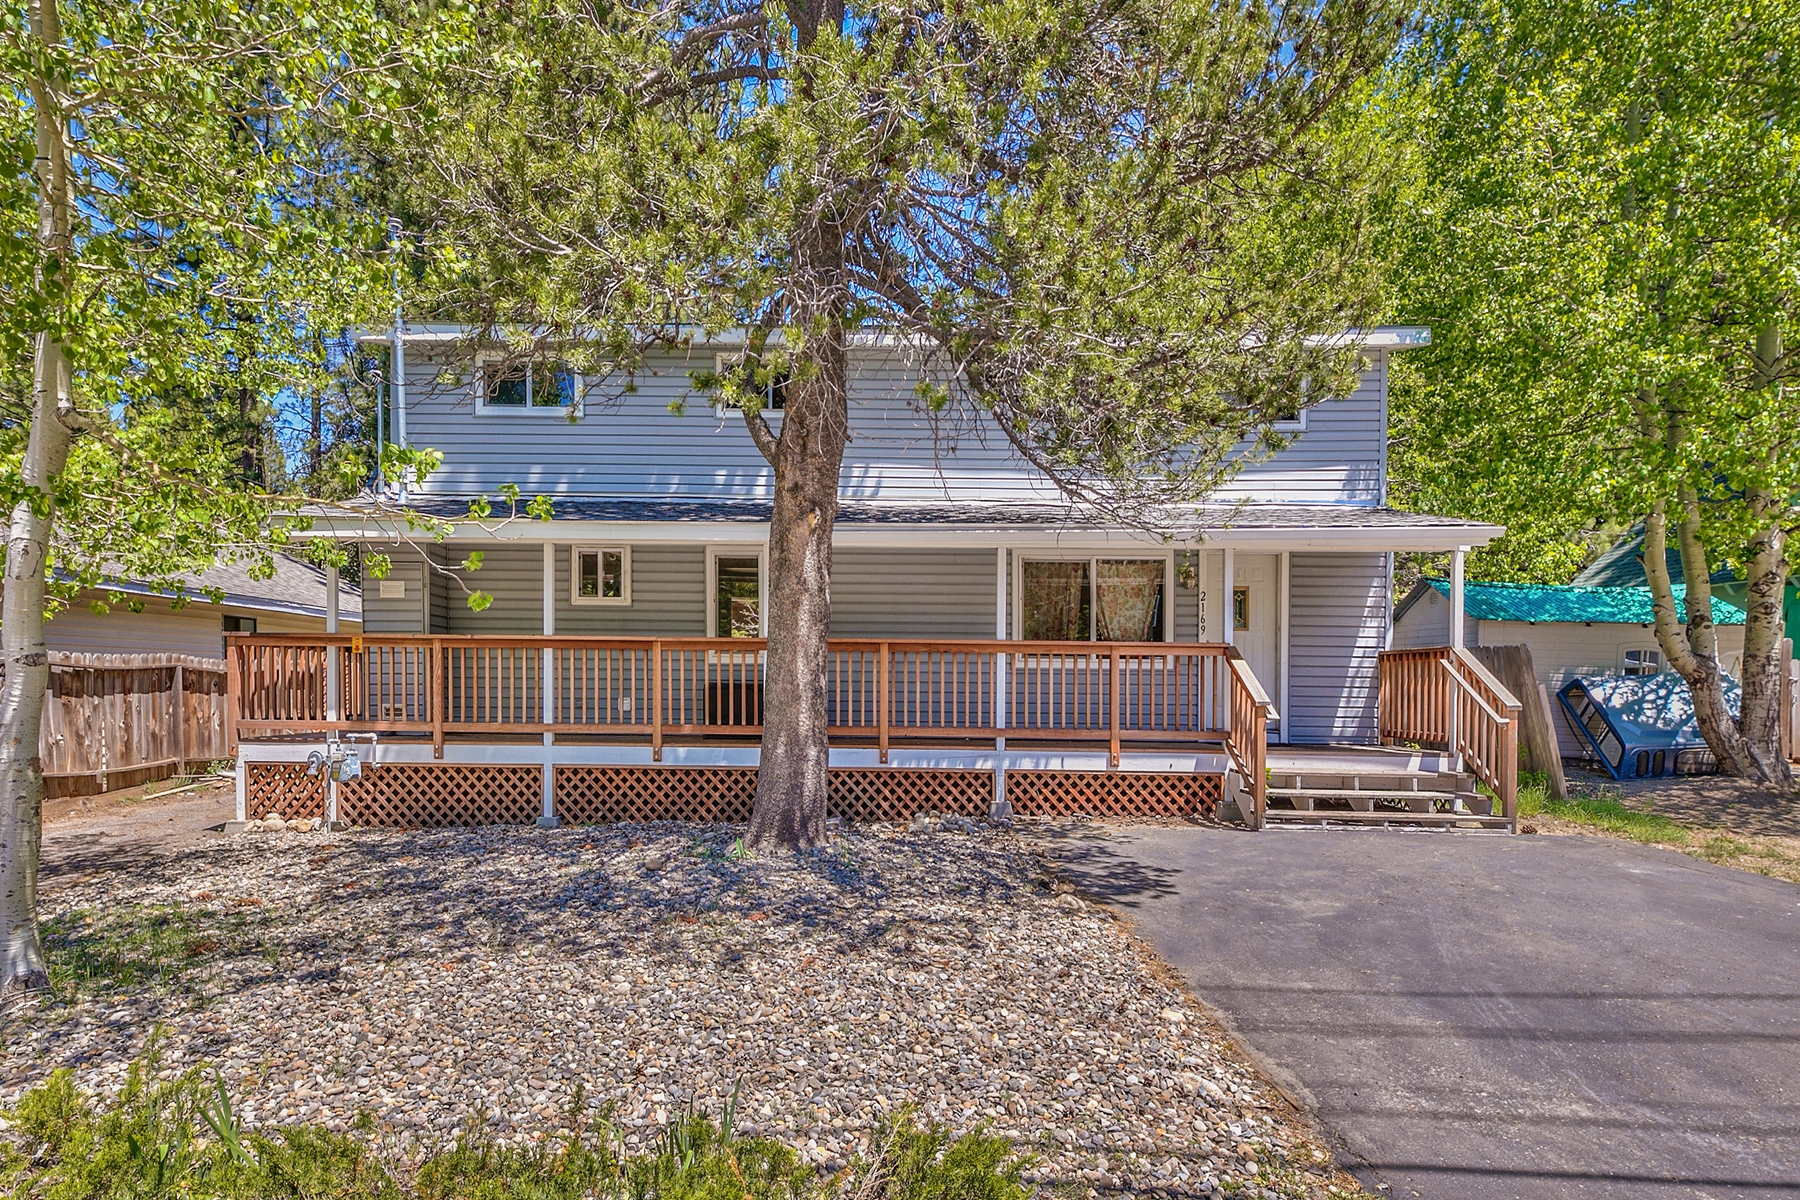 Single Family Home for Active at 2169 Lindenwood, South Lake Tahoe, CA, 96150 2169 Lindenwood Drive South Lake Tahoe, California 96150 United States